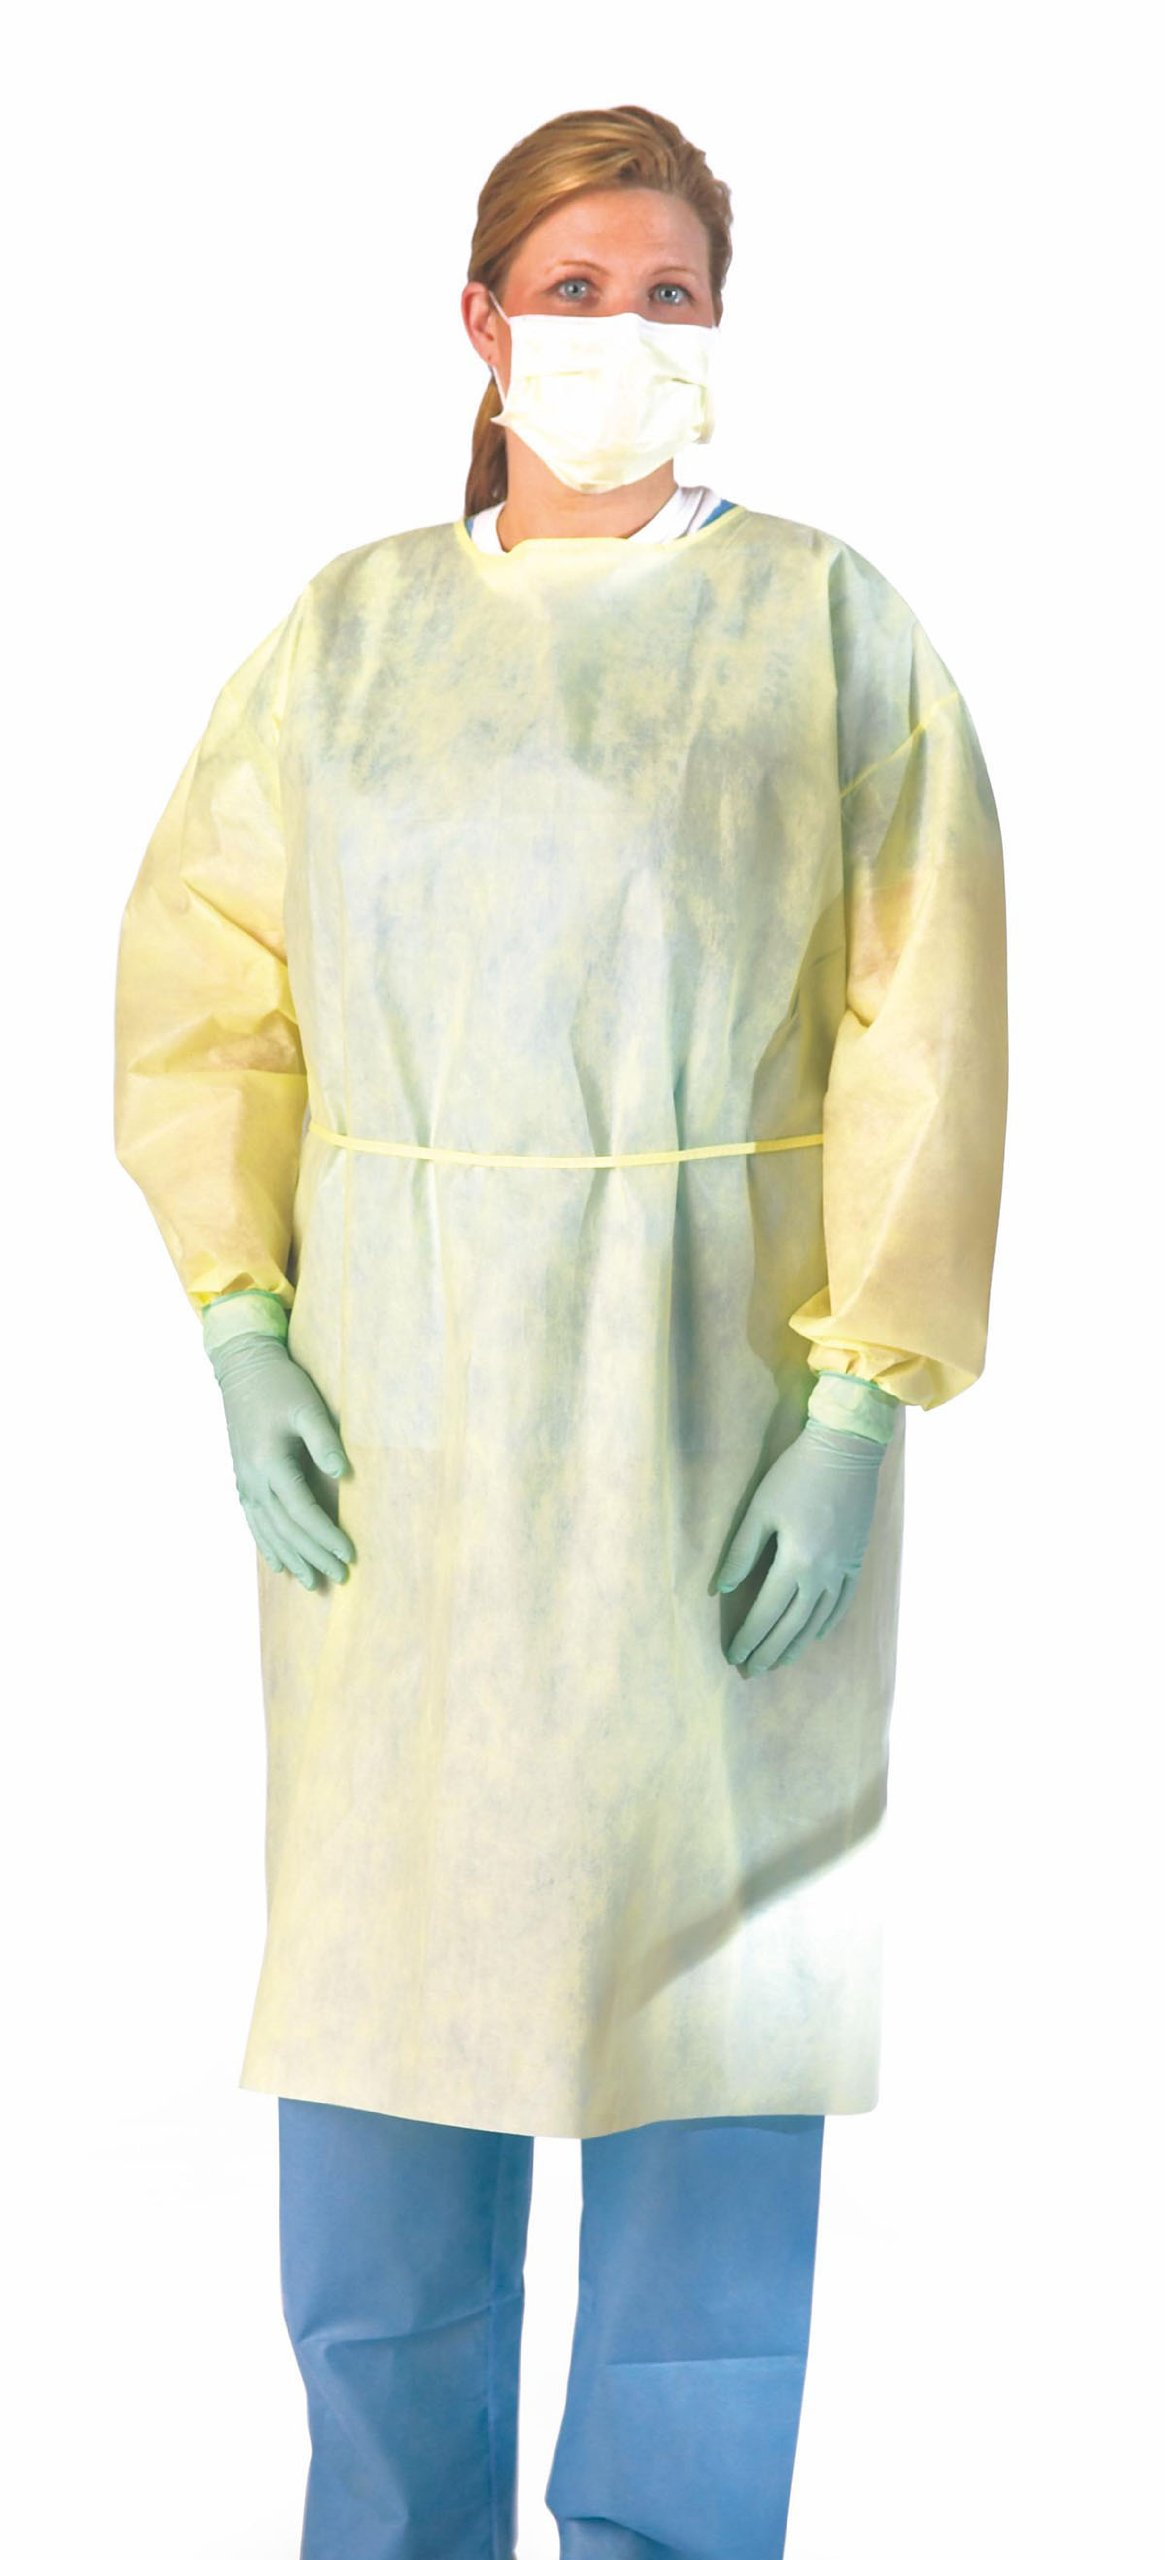 Medline NON27SMS2 Medium Weight Multi-Ply Fluid Resistant Isolation Gown, Latex Free, Regular/Large, Yellow (Pack of 100)